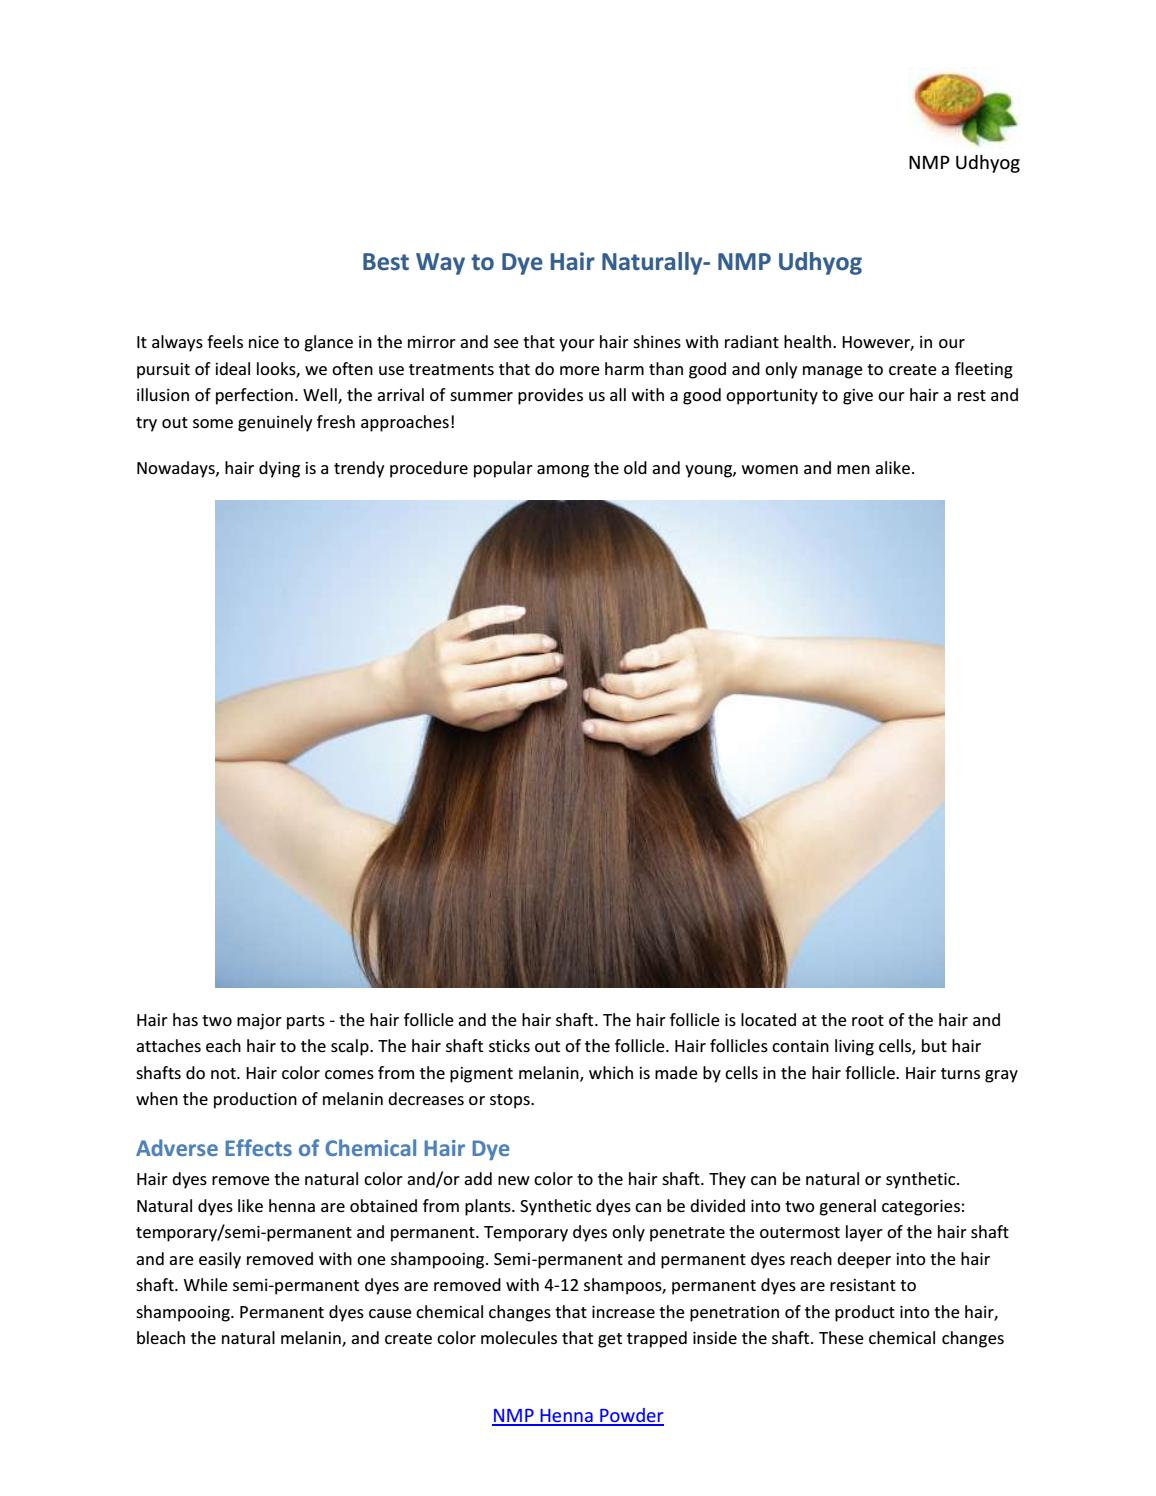 Best Way to Dye Hair Naturally- NMP Udhyog by Nmp Udyog - issuu